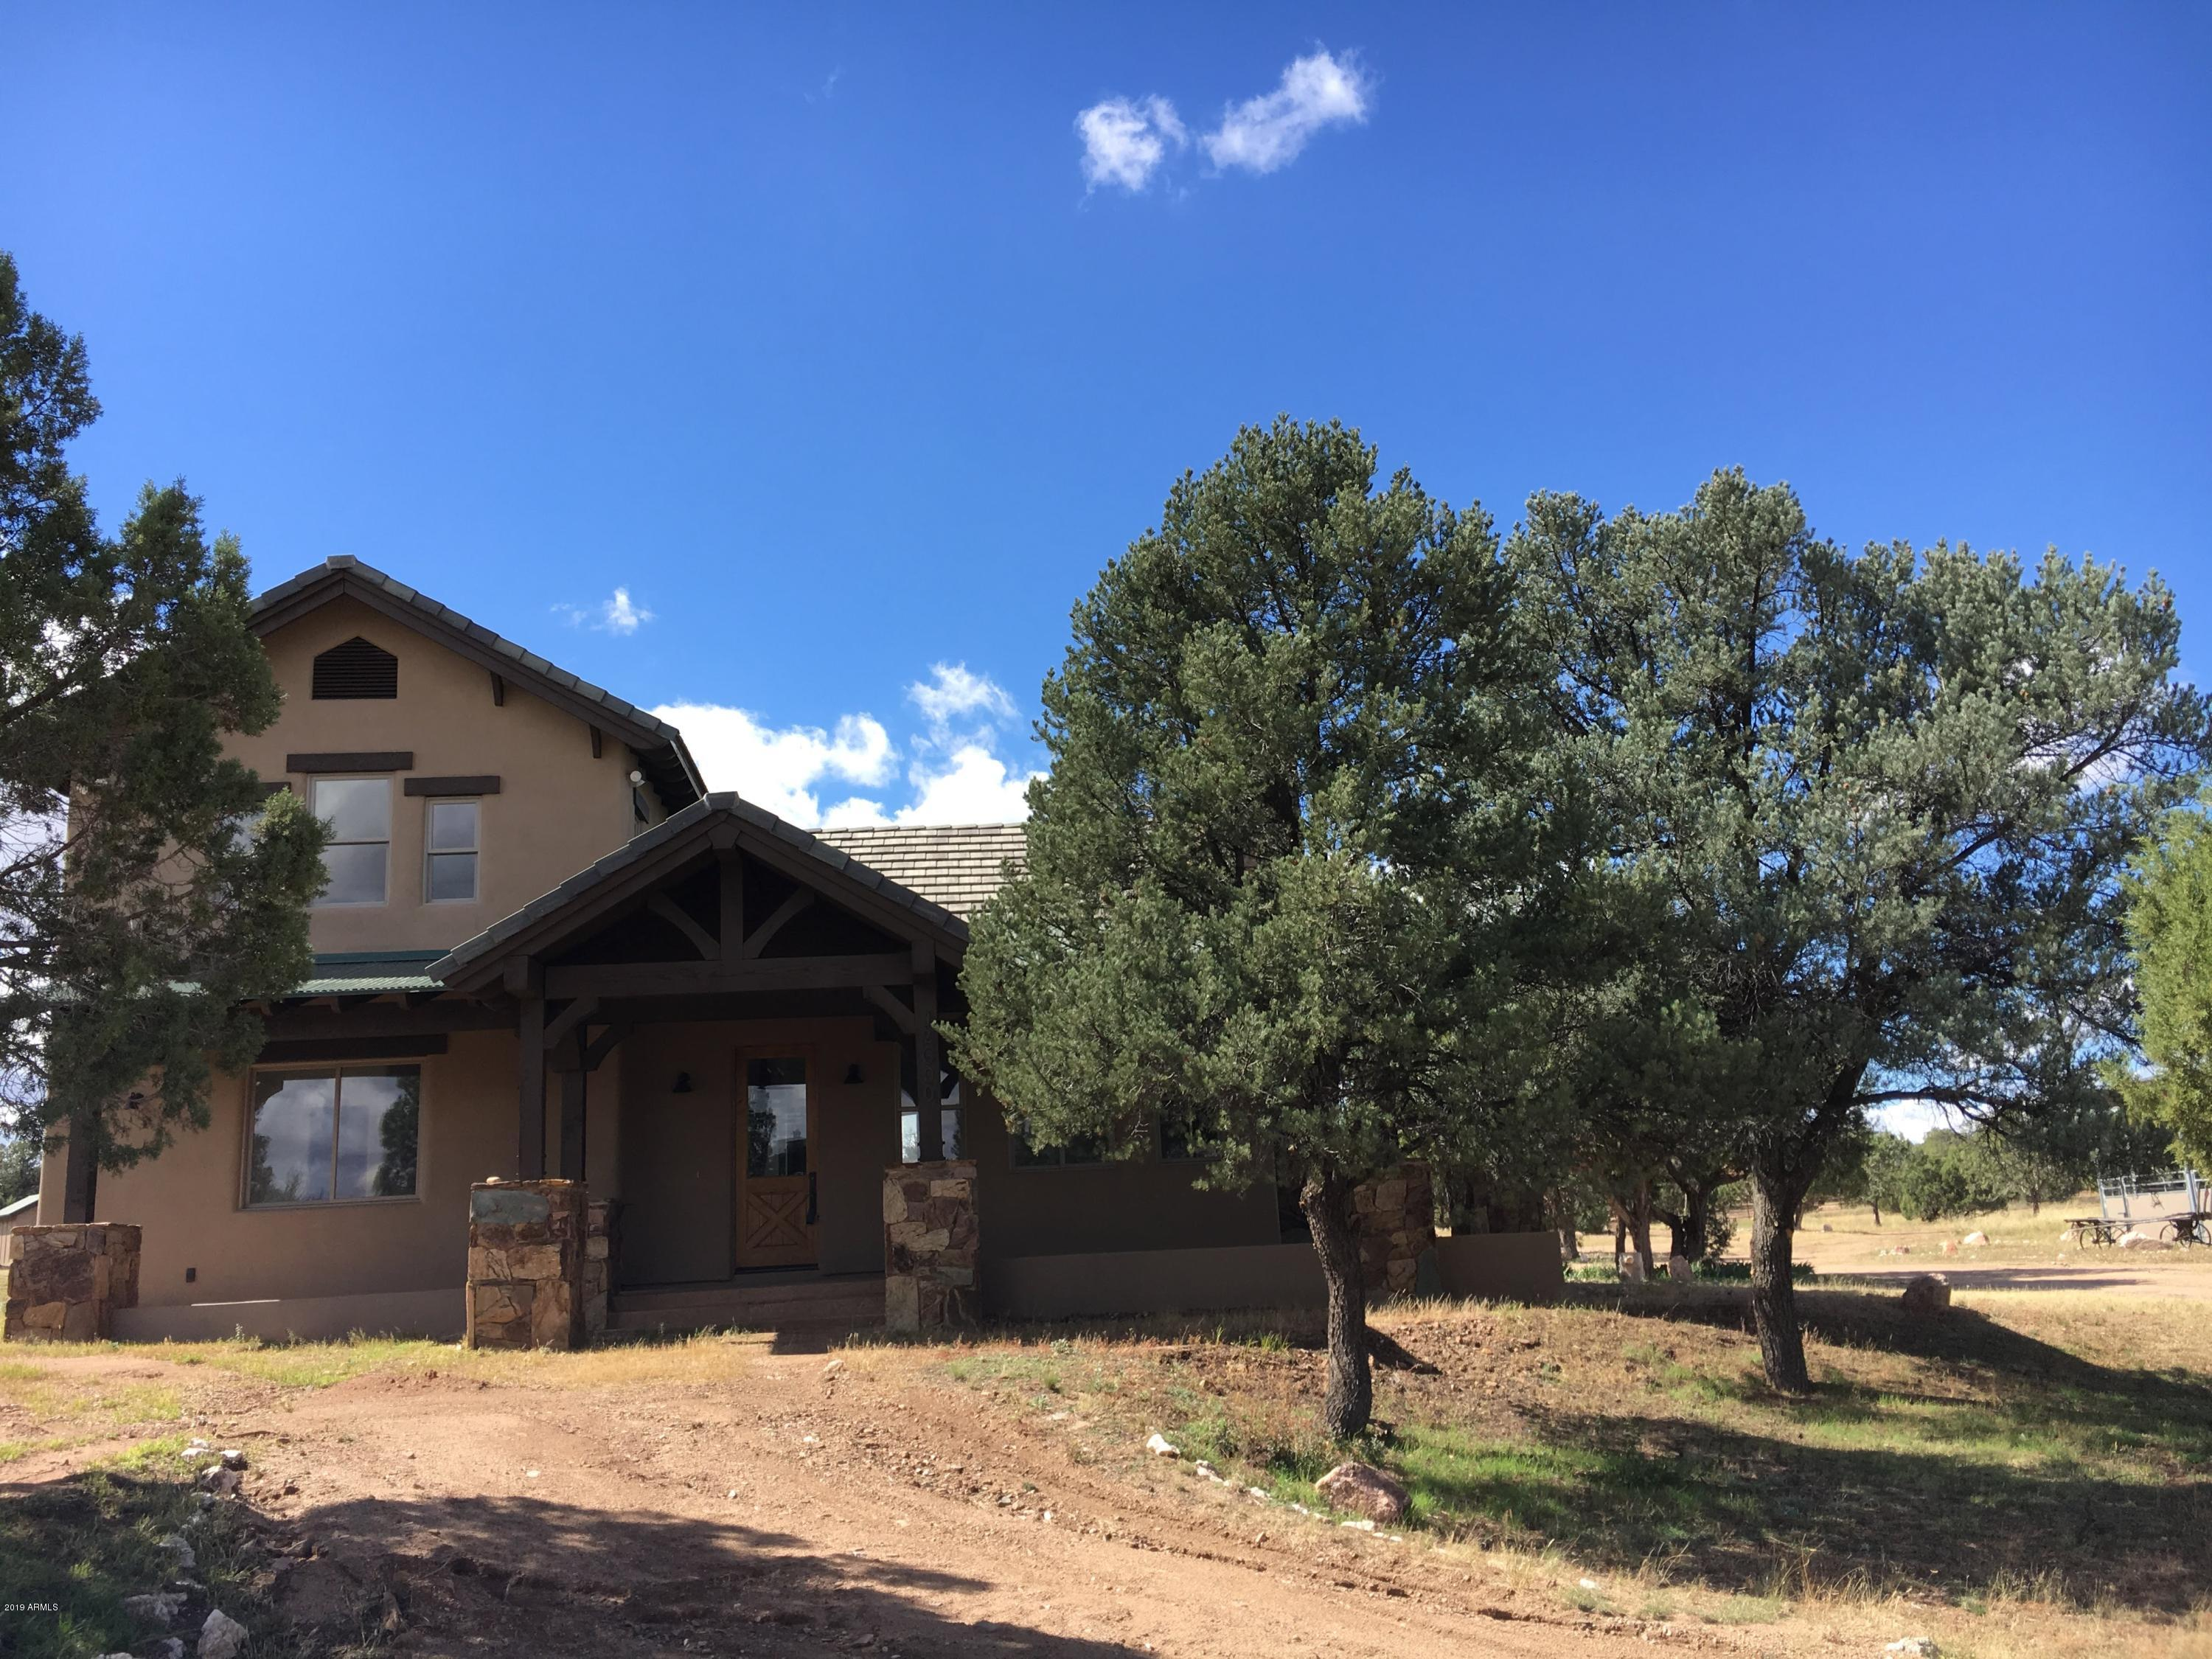 12600 N PHEASANT RUN Road, one of homes for sale in Prescott